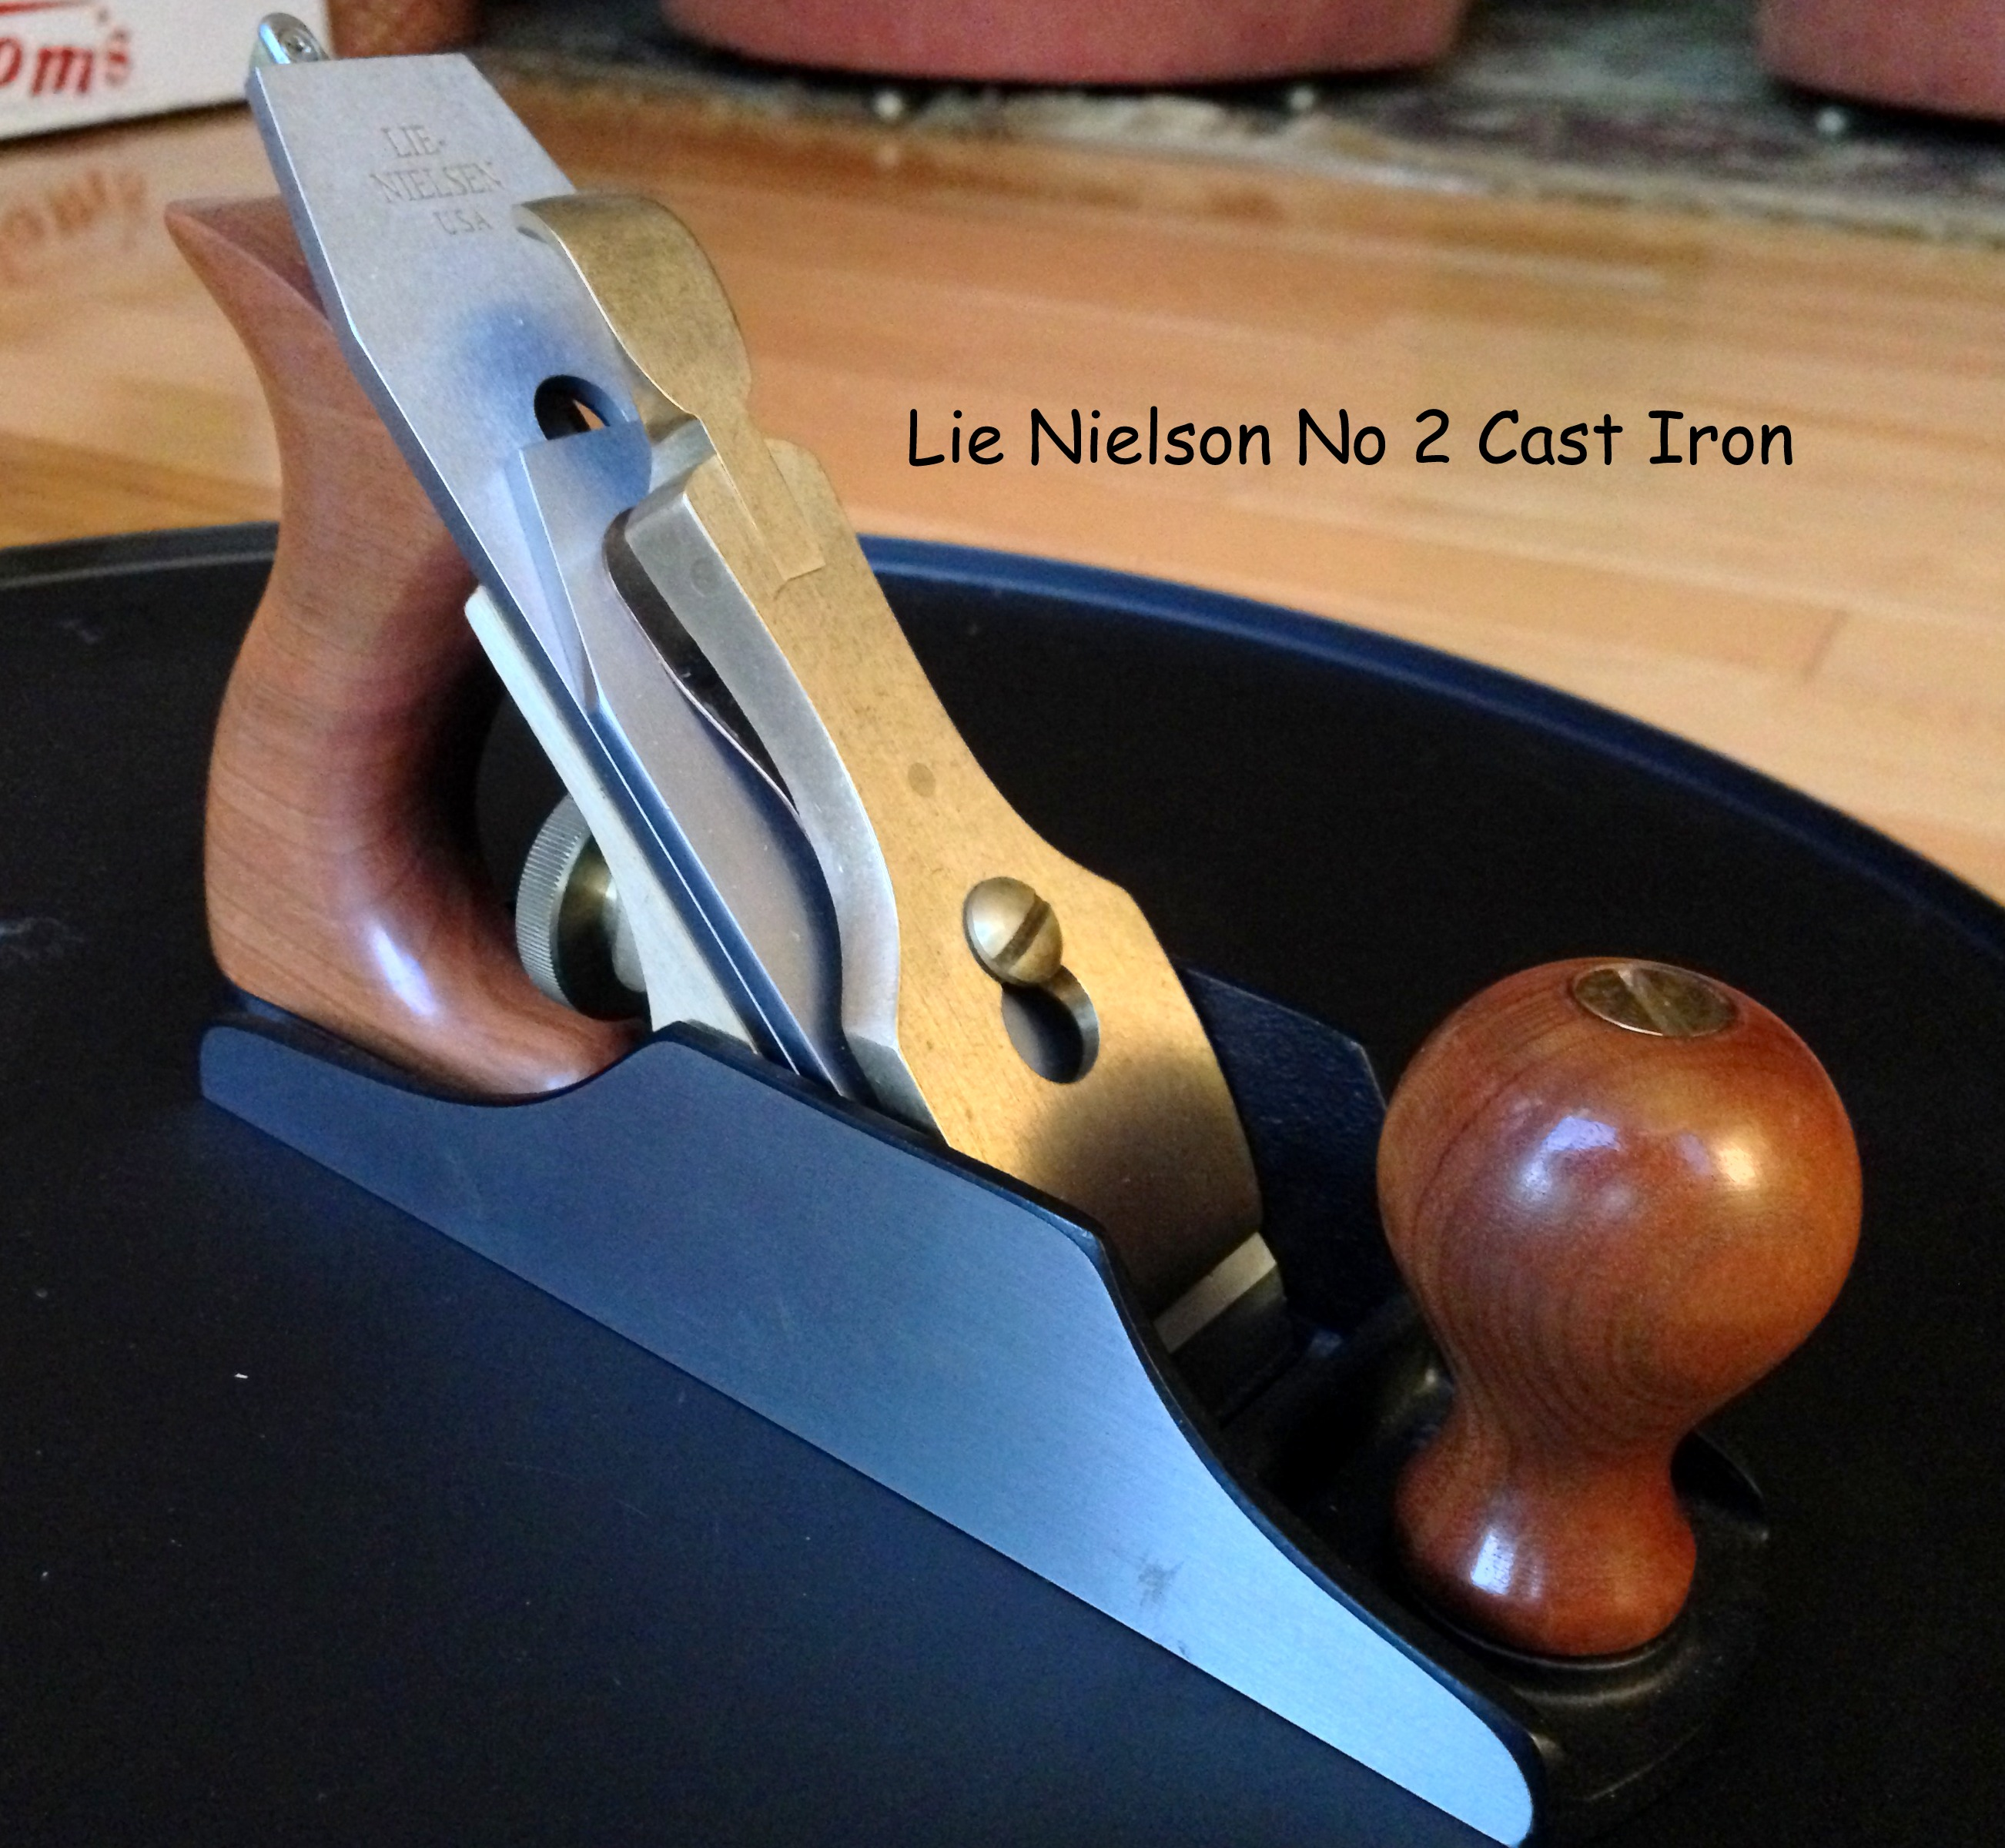 Lie Nielson No 2 Cast Iron